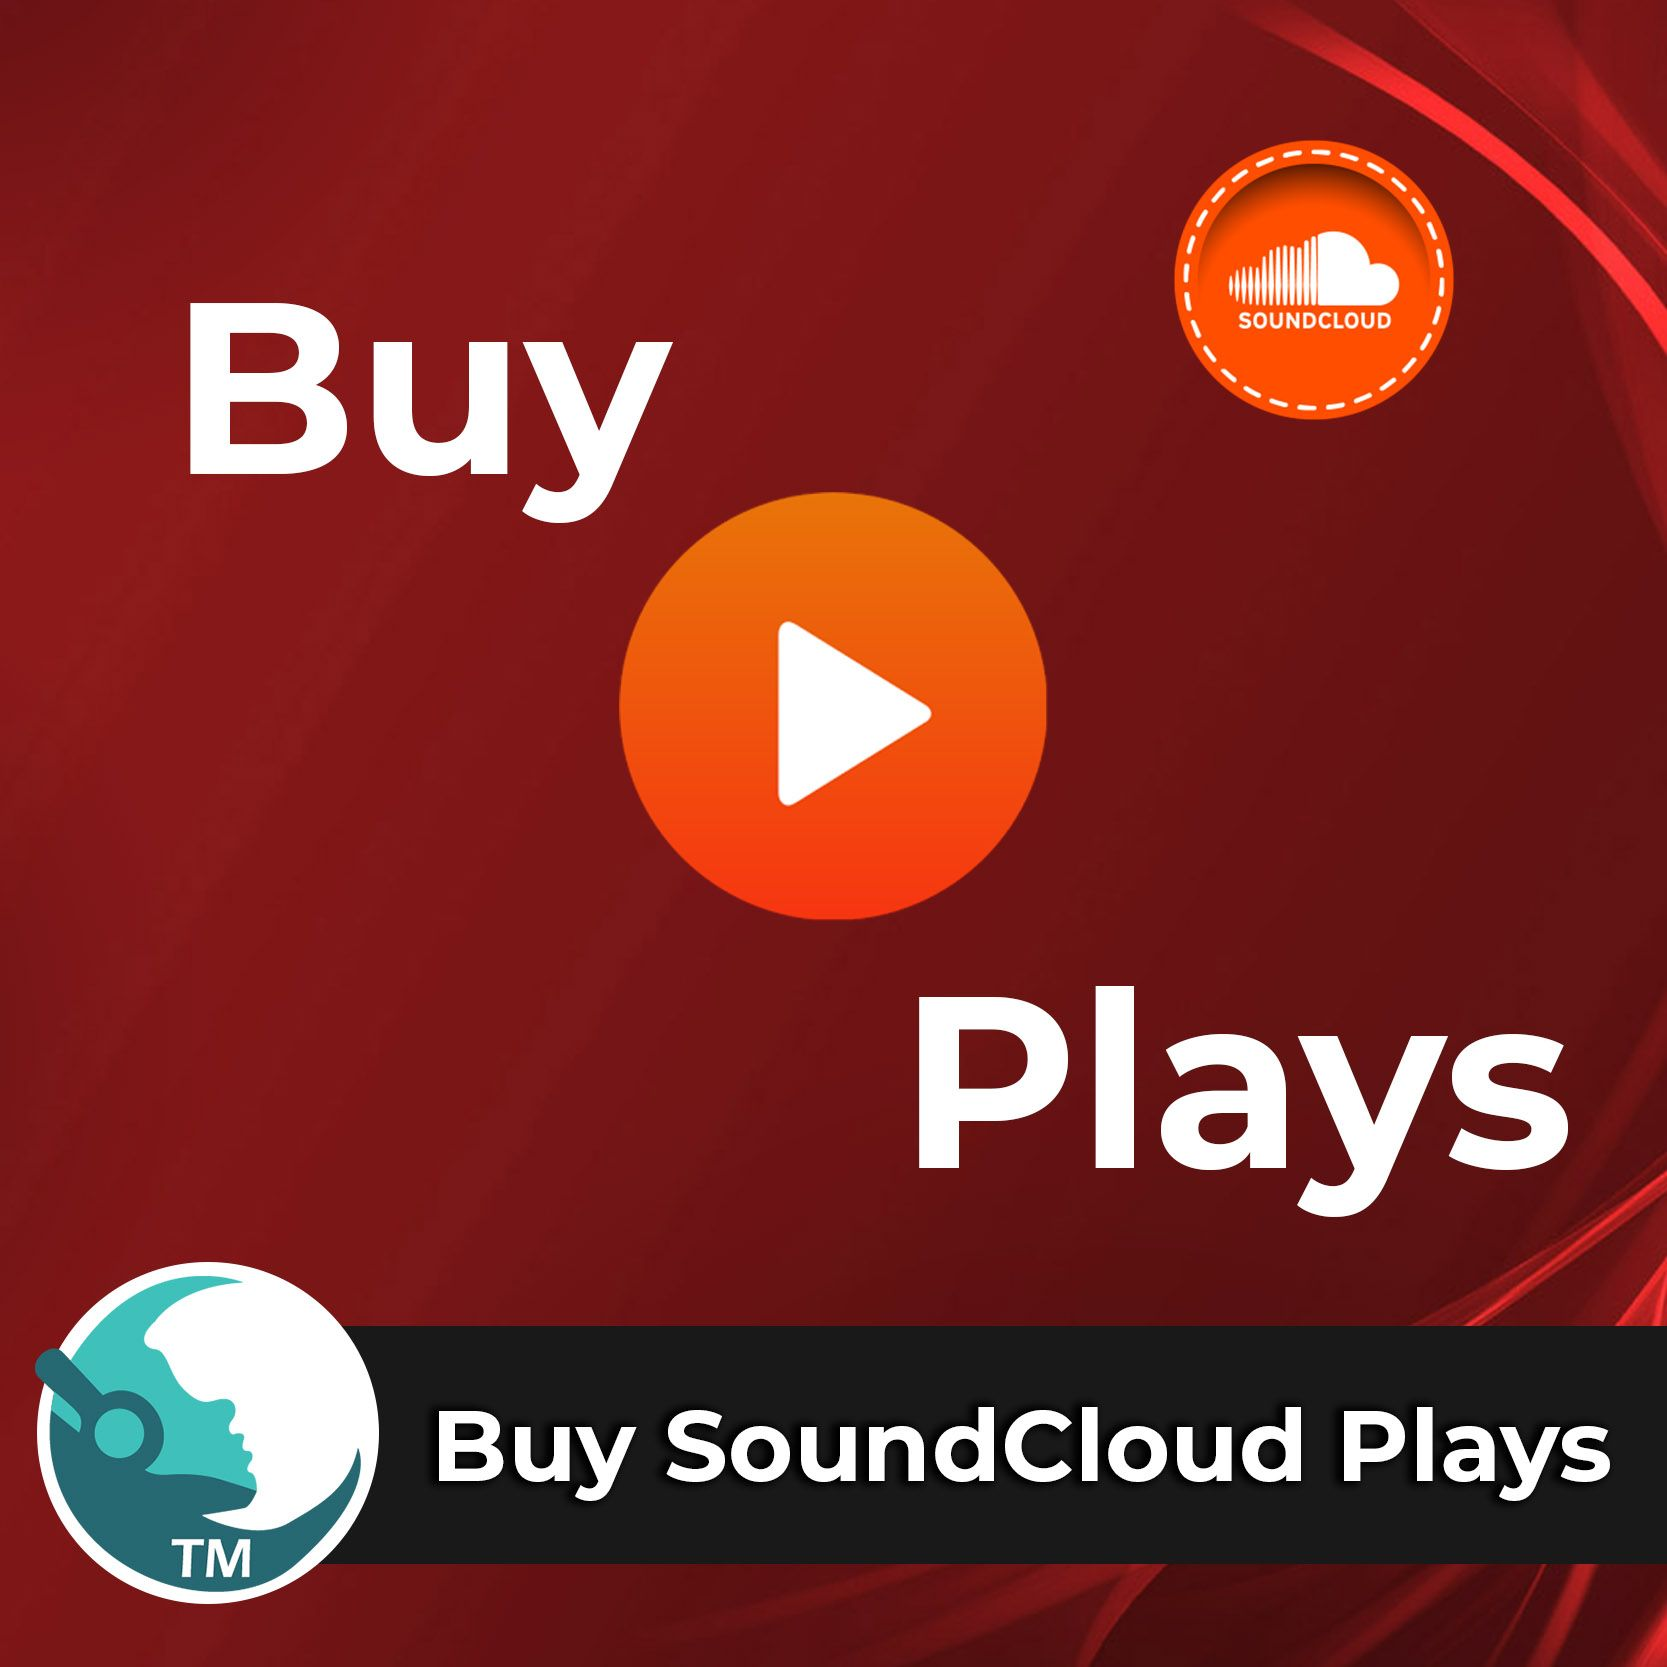 Buy SoundCloud Plays Cheap | Buy Soundcloud plays | Stuff to buy